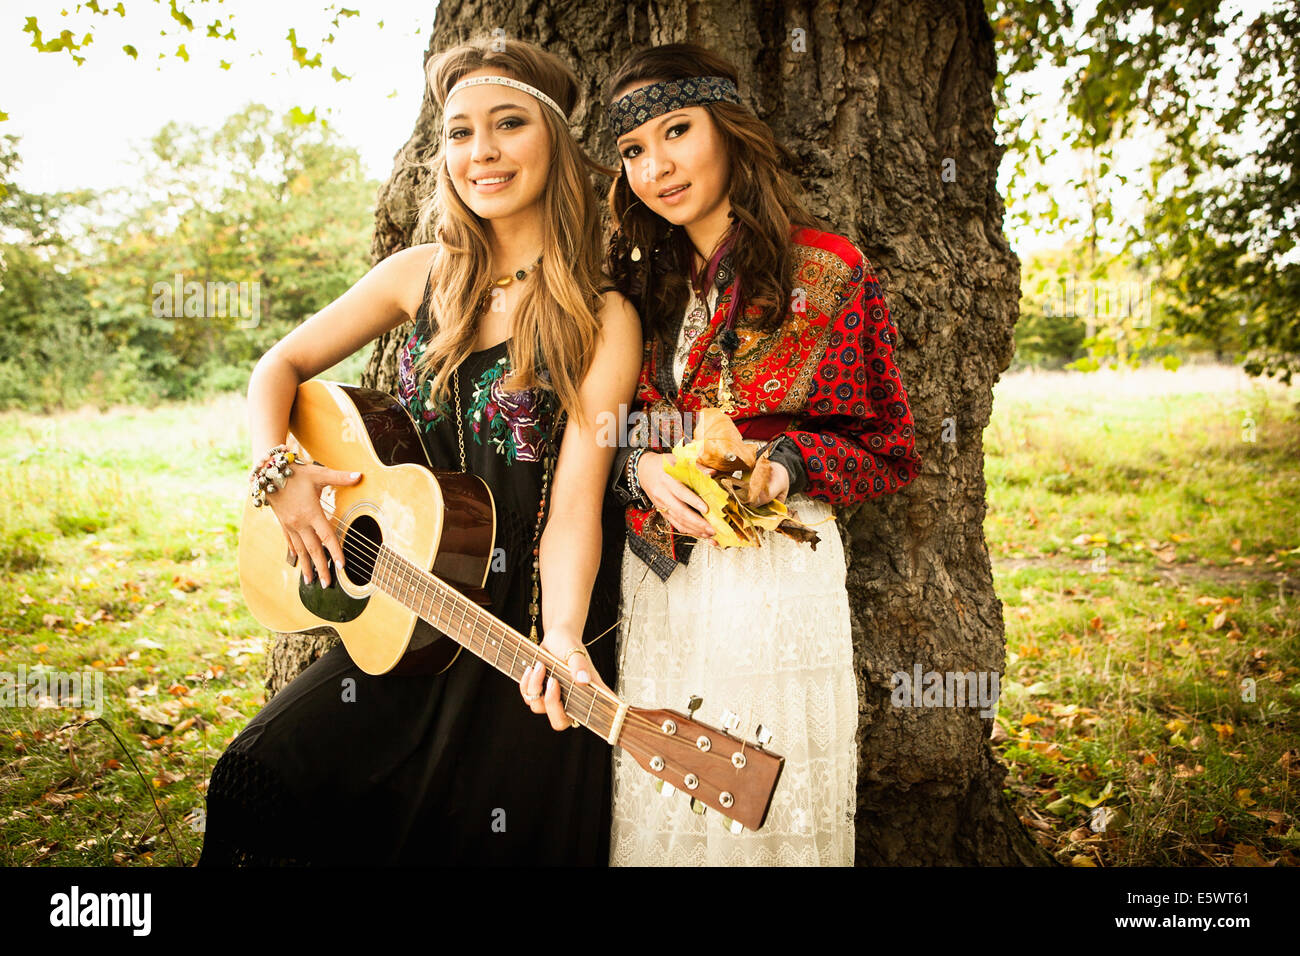 Hippy girls by tree with guitar - Stock Image